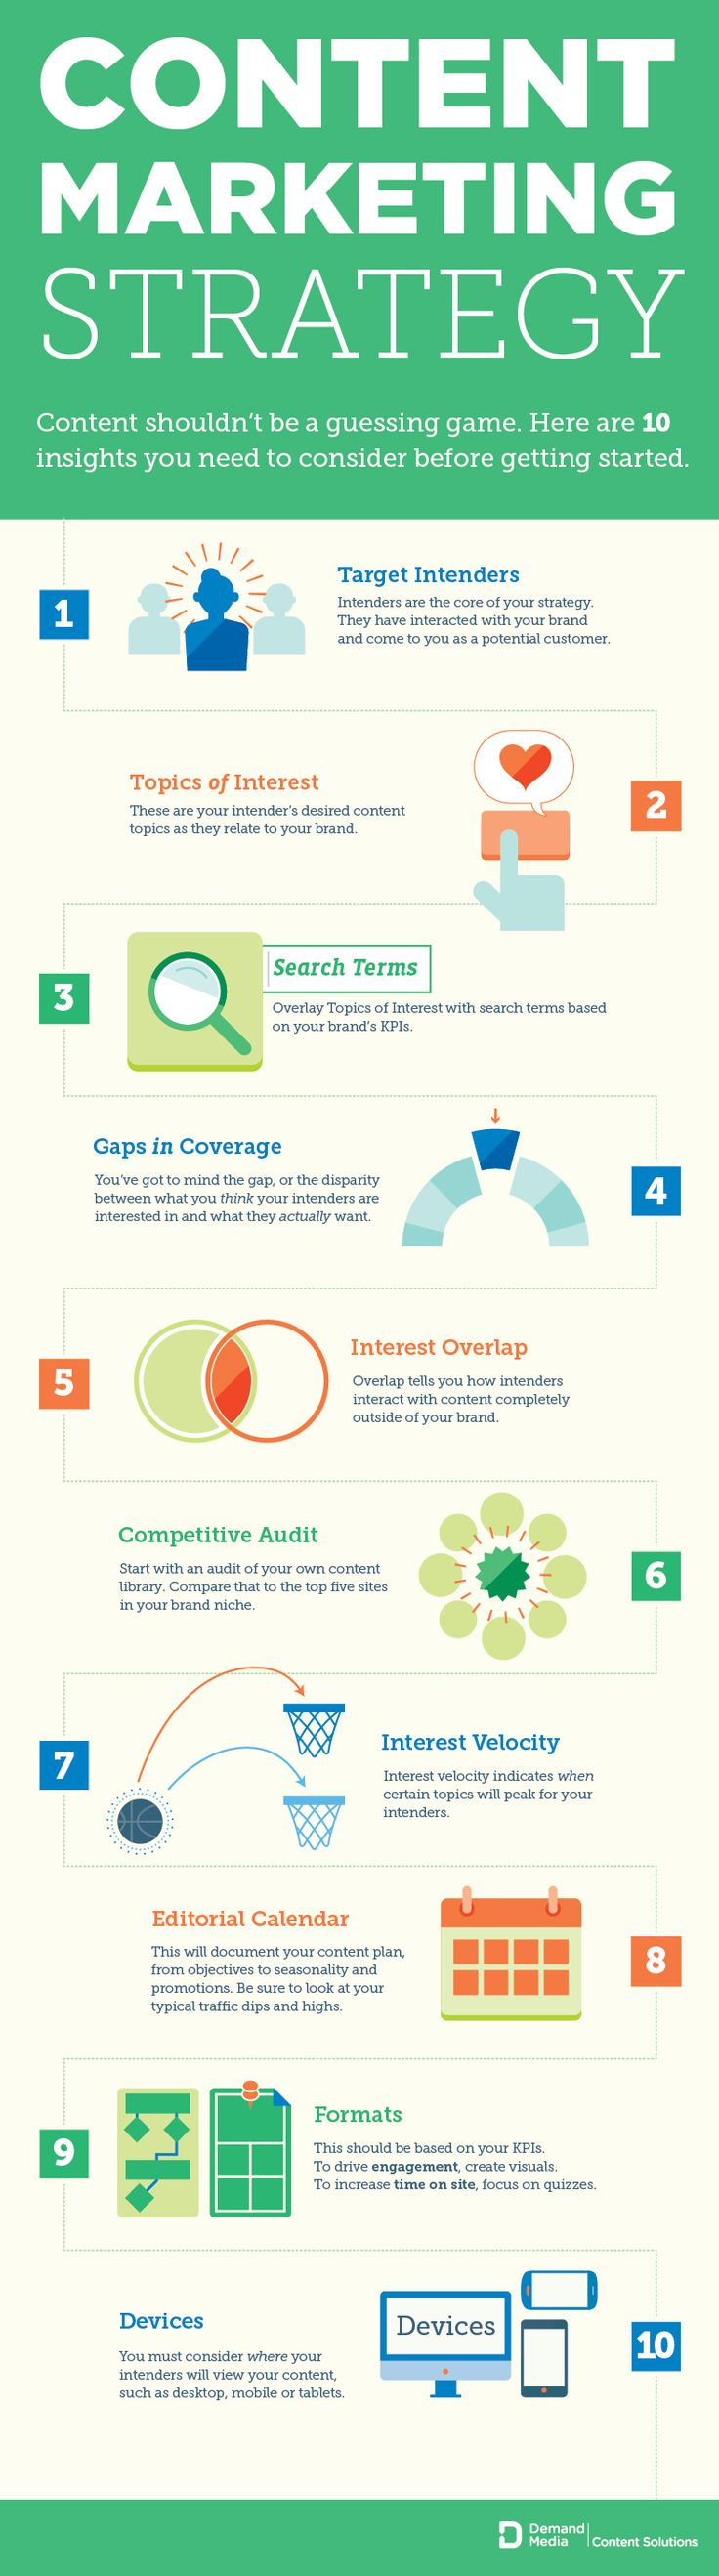 10 Easy Steps to Crafting a Successful Content Strategy - #infographic #contentmarketing